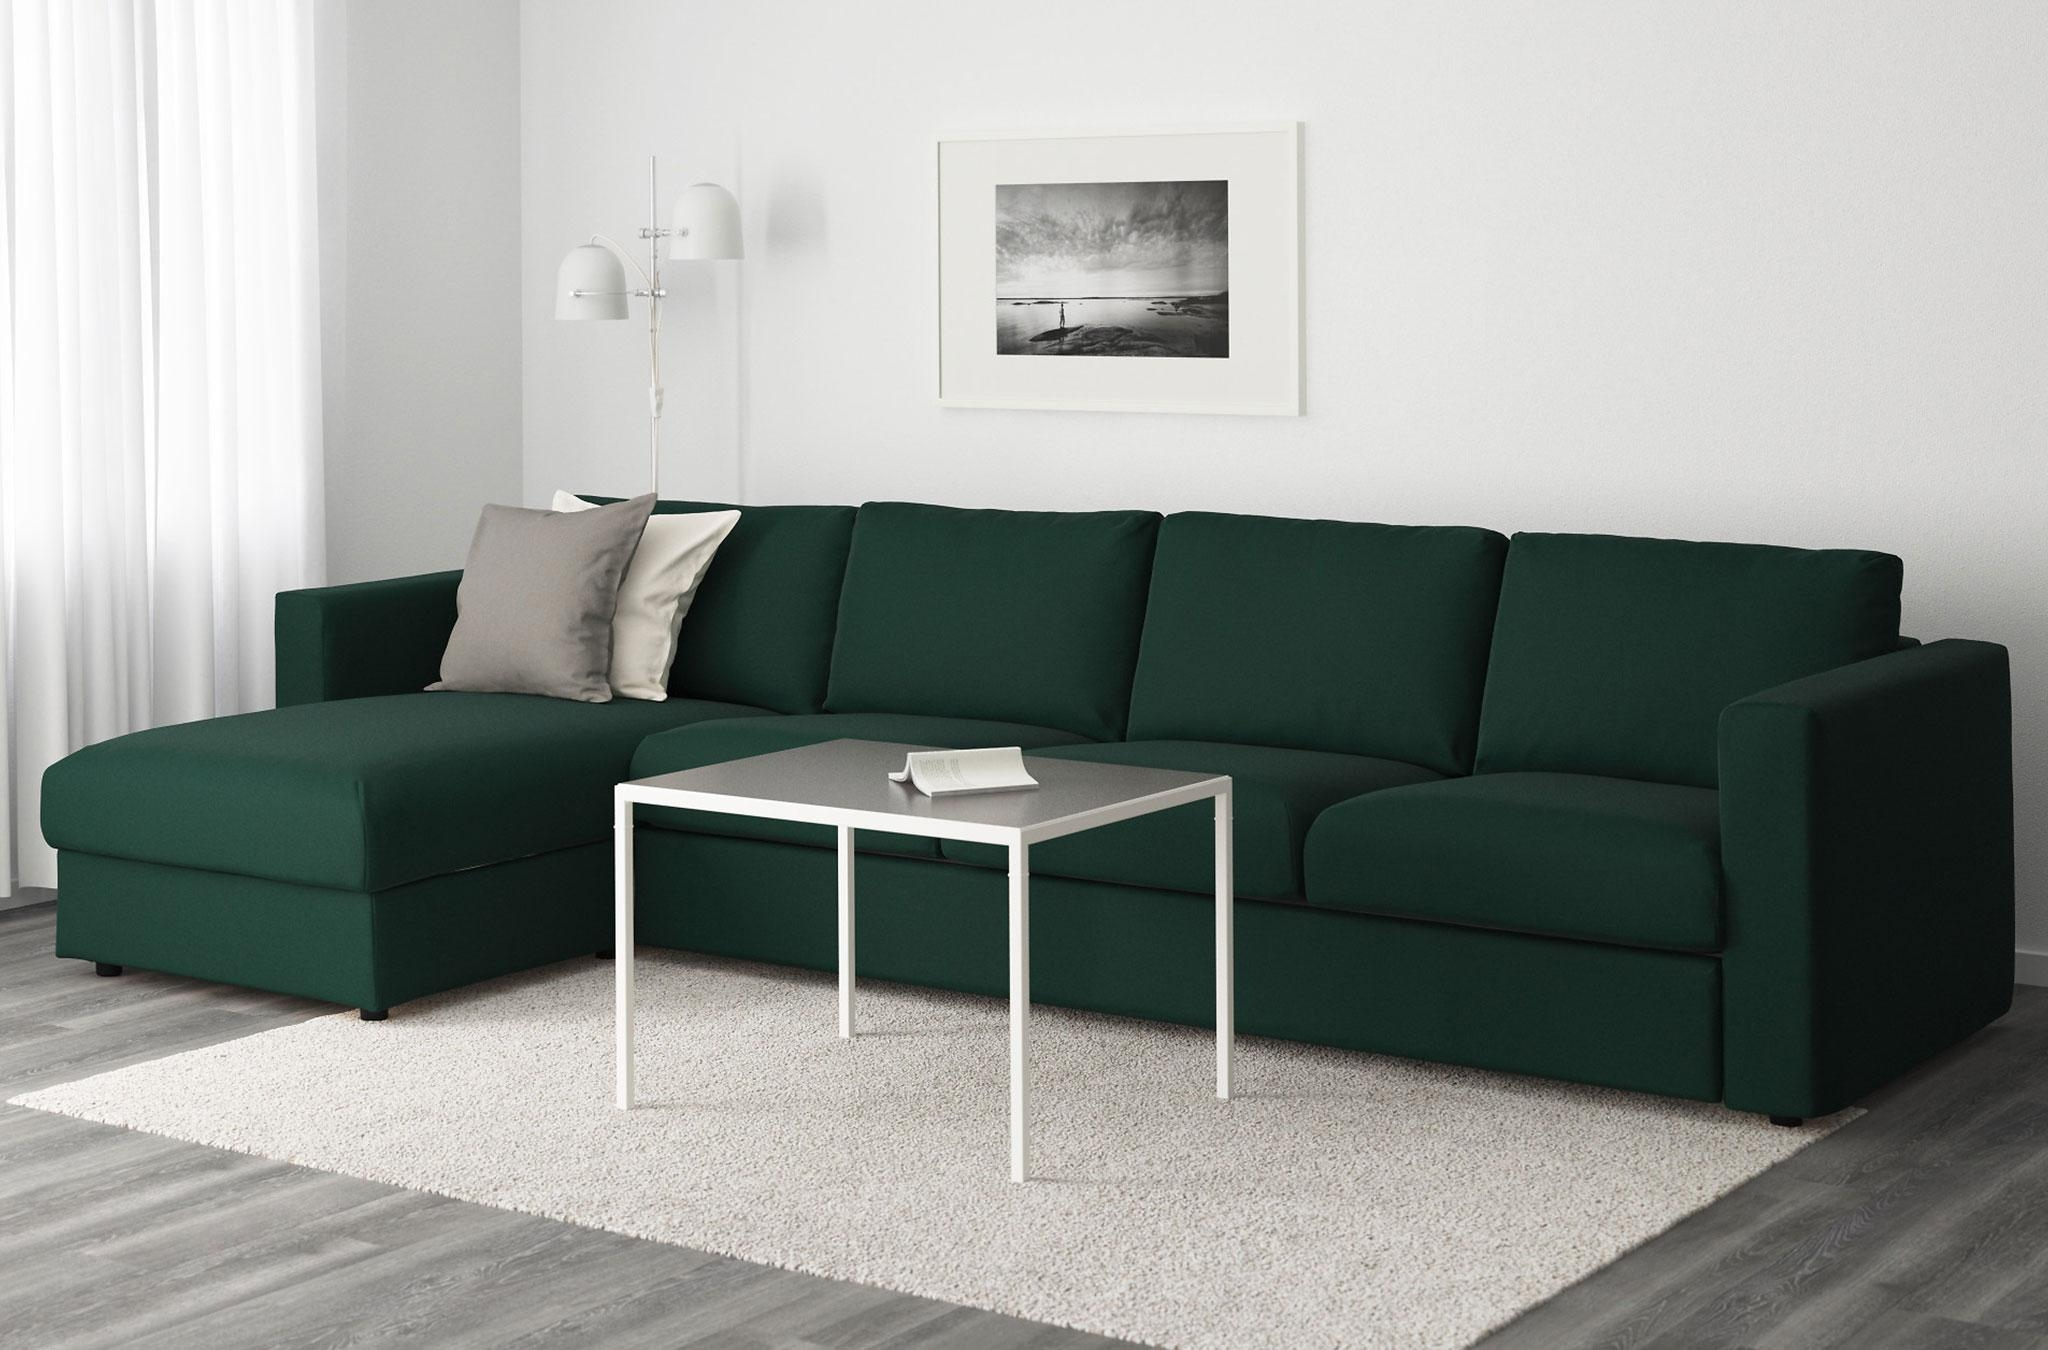 2017 Latest Modular Sofas